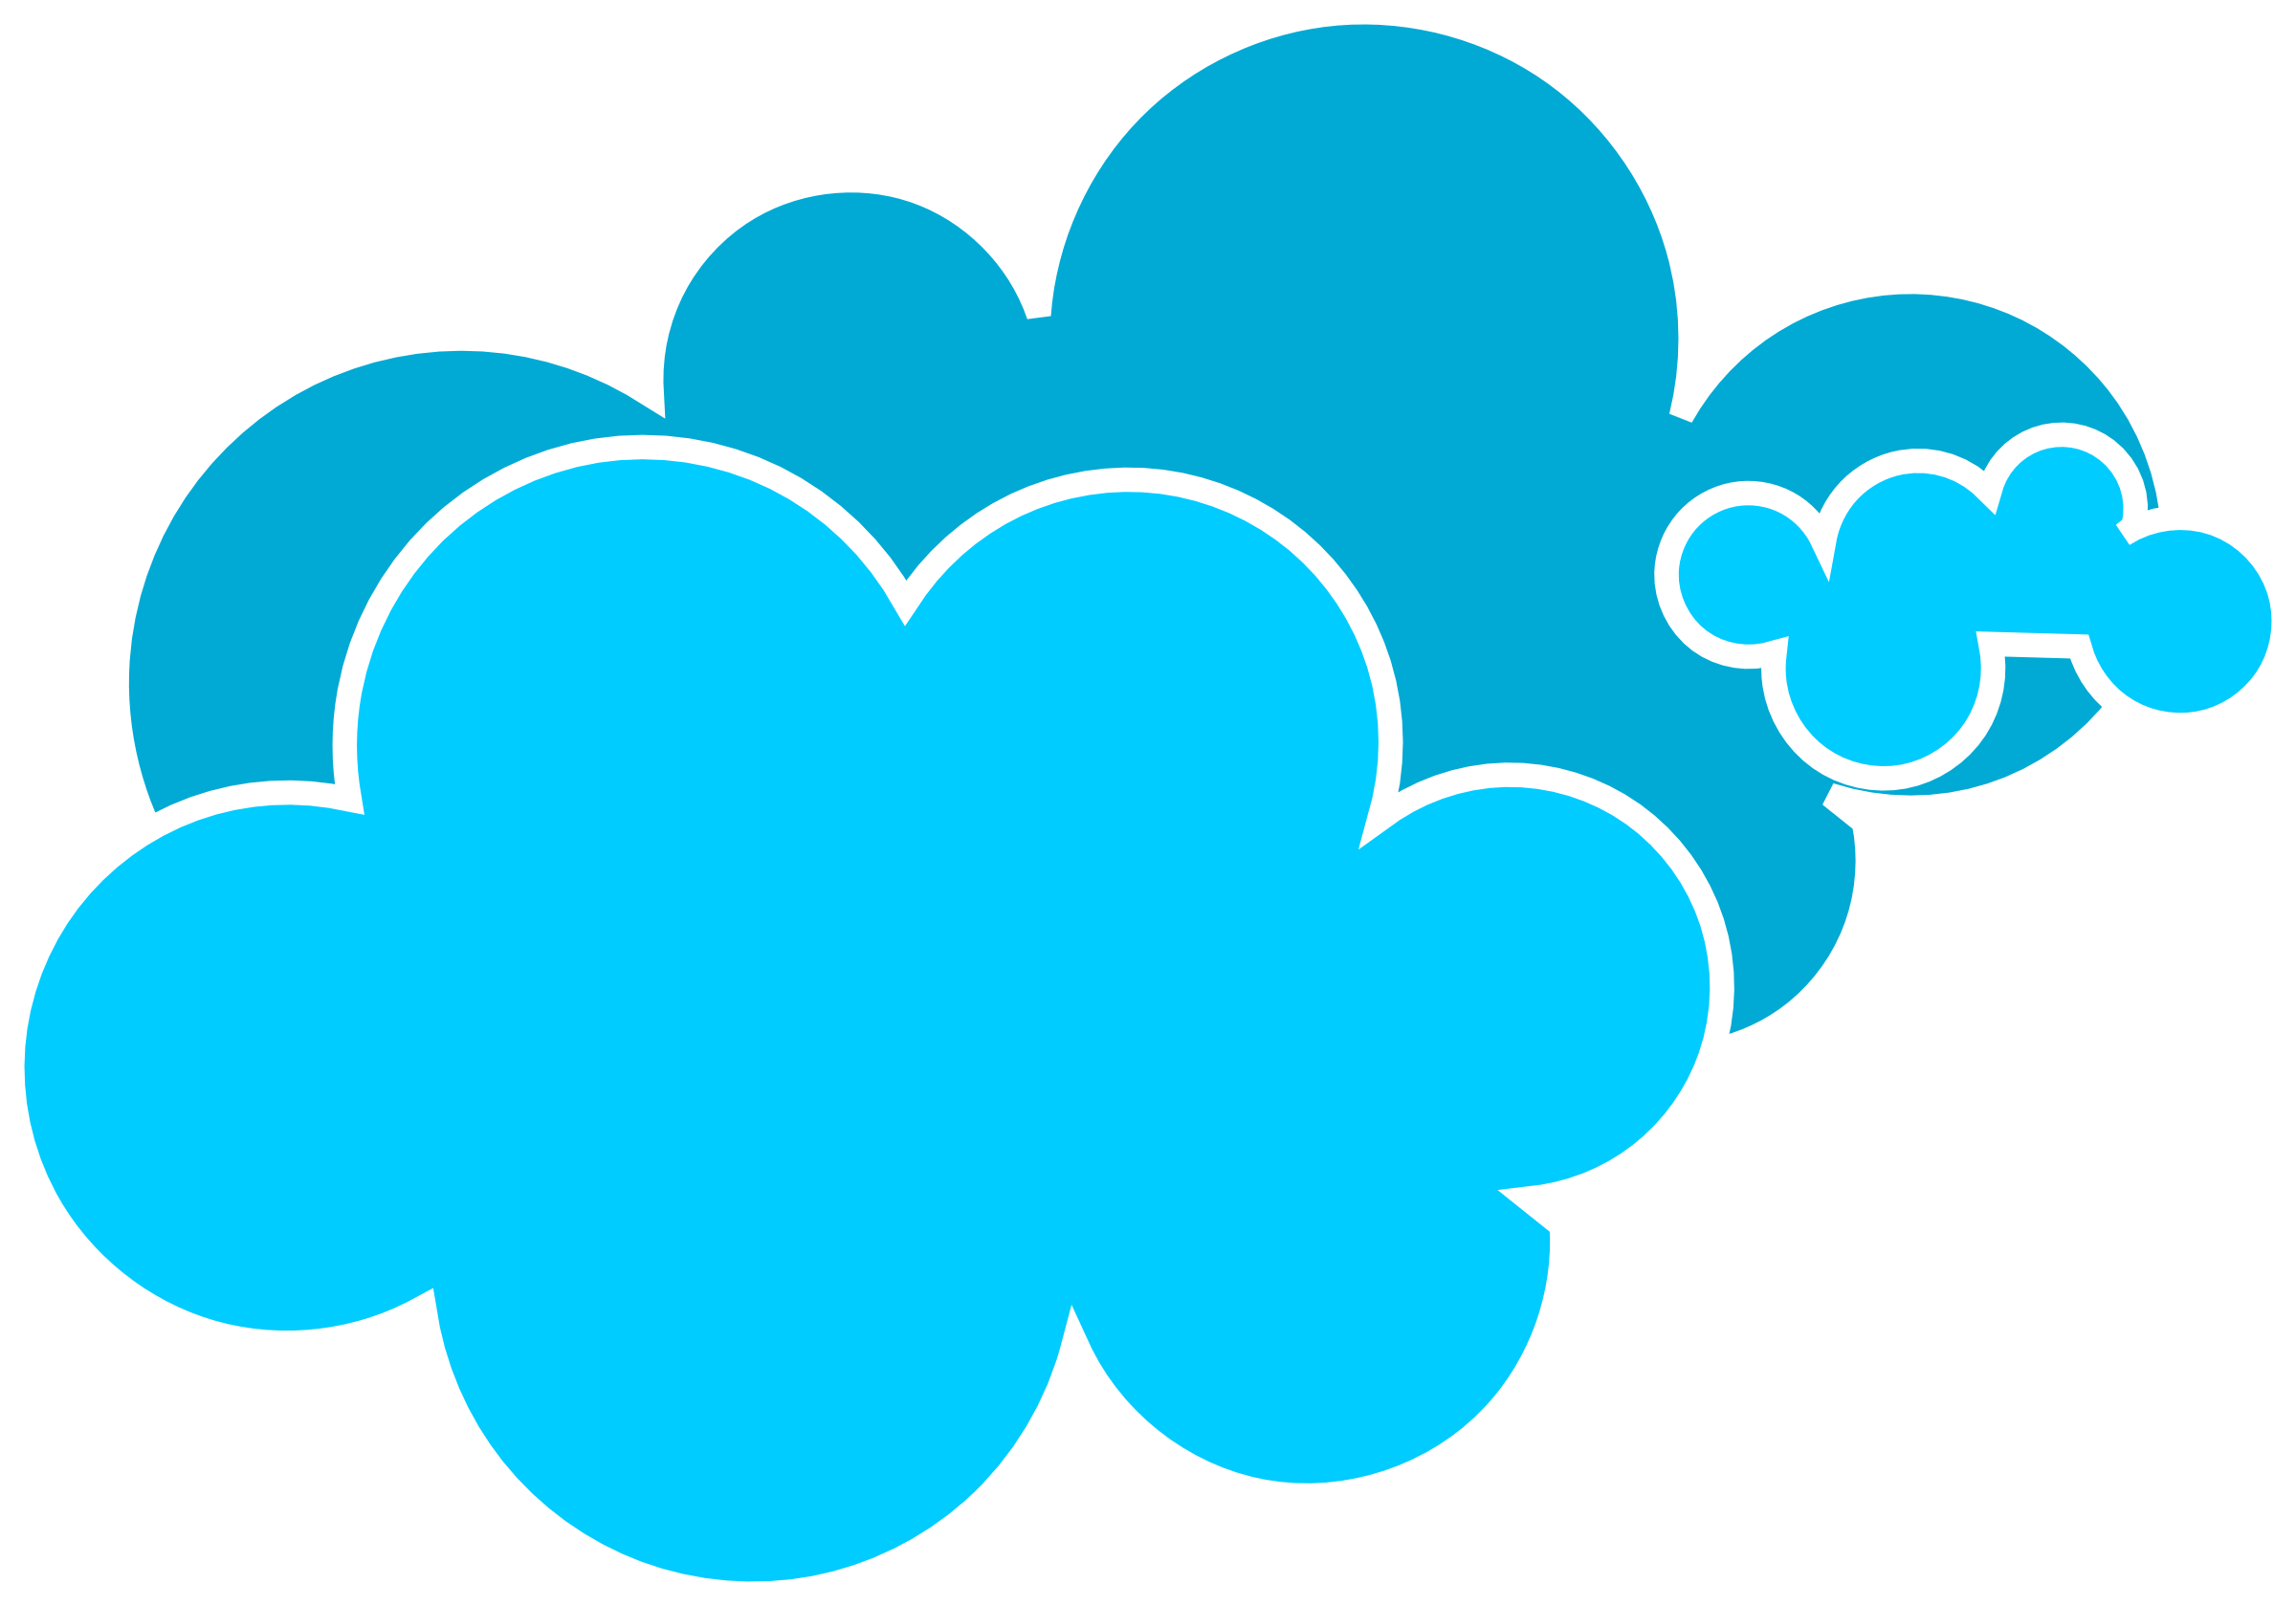 Cloud Clipart   Clipart Panda - Free Clipart Images jpg library